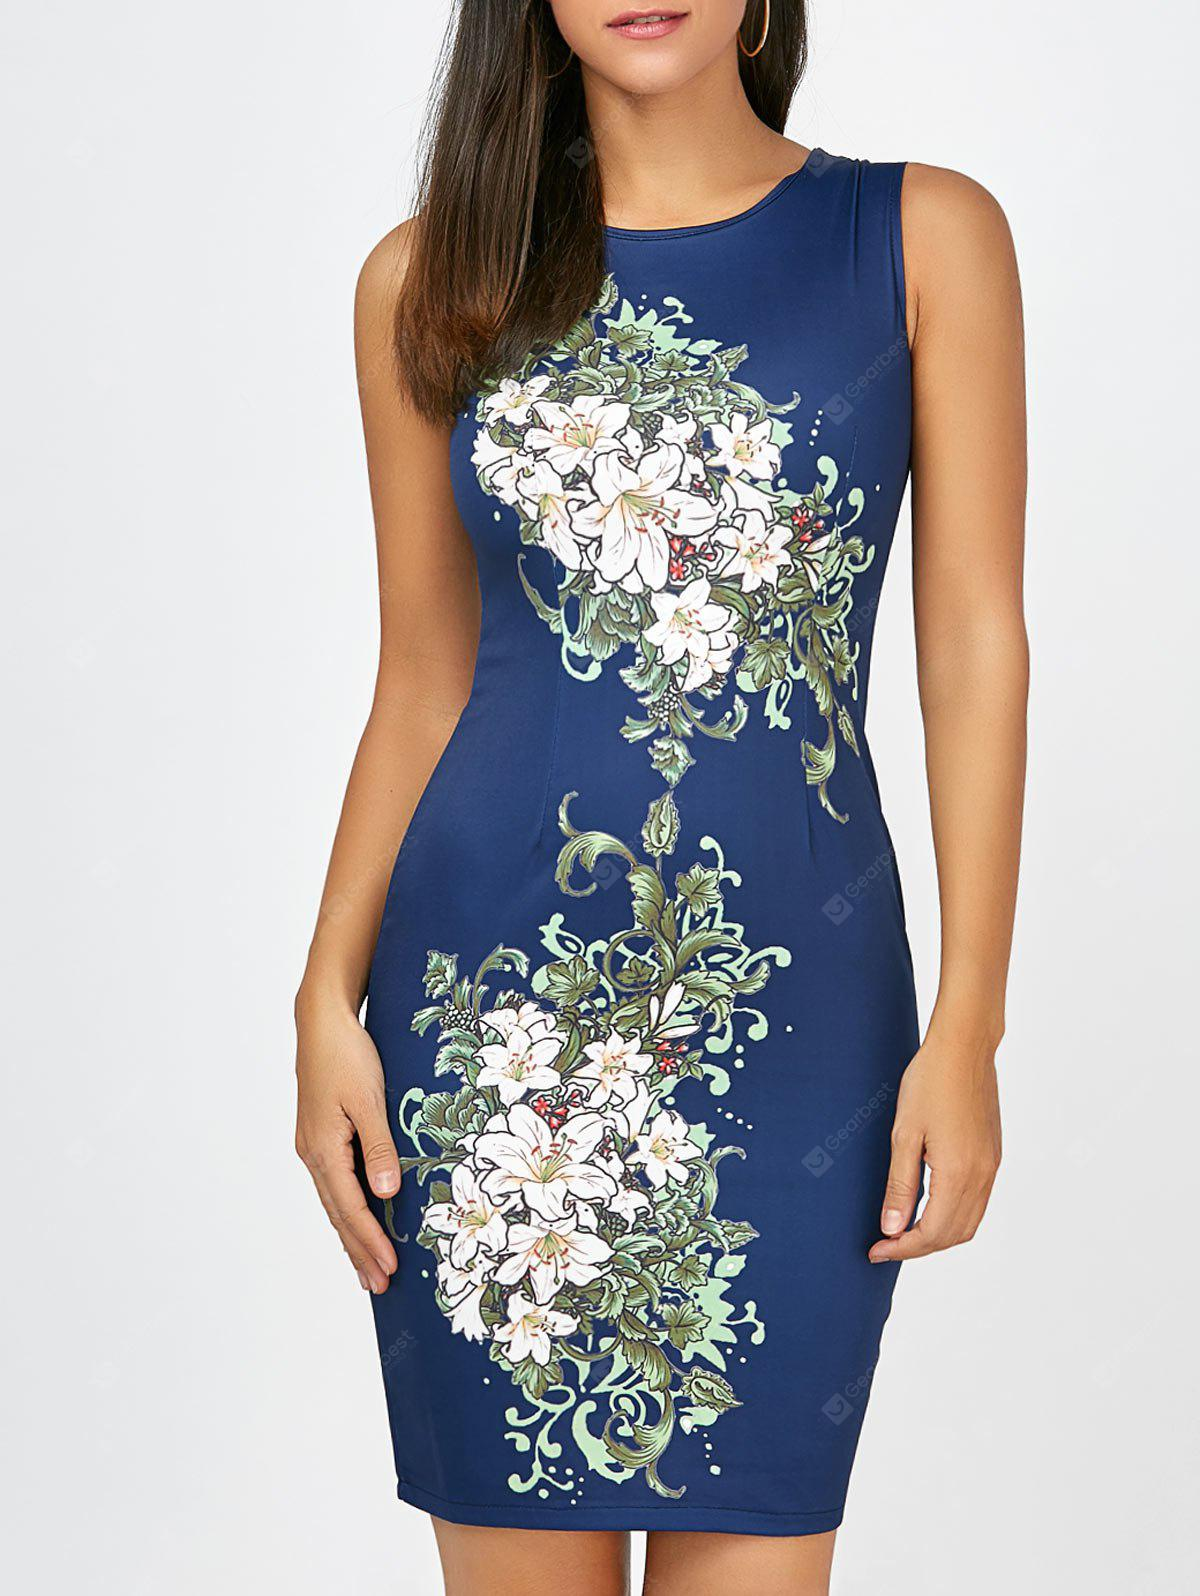 CERULEAN L Short Bodycon Sleeveless Floral Dress